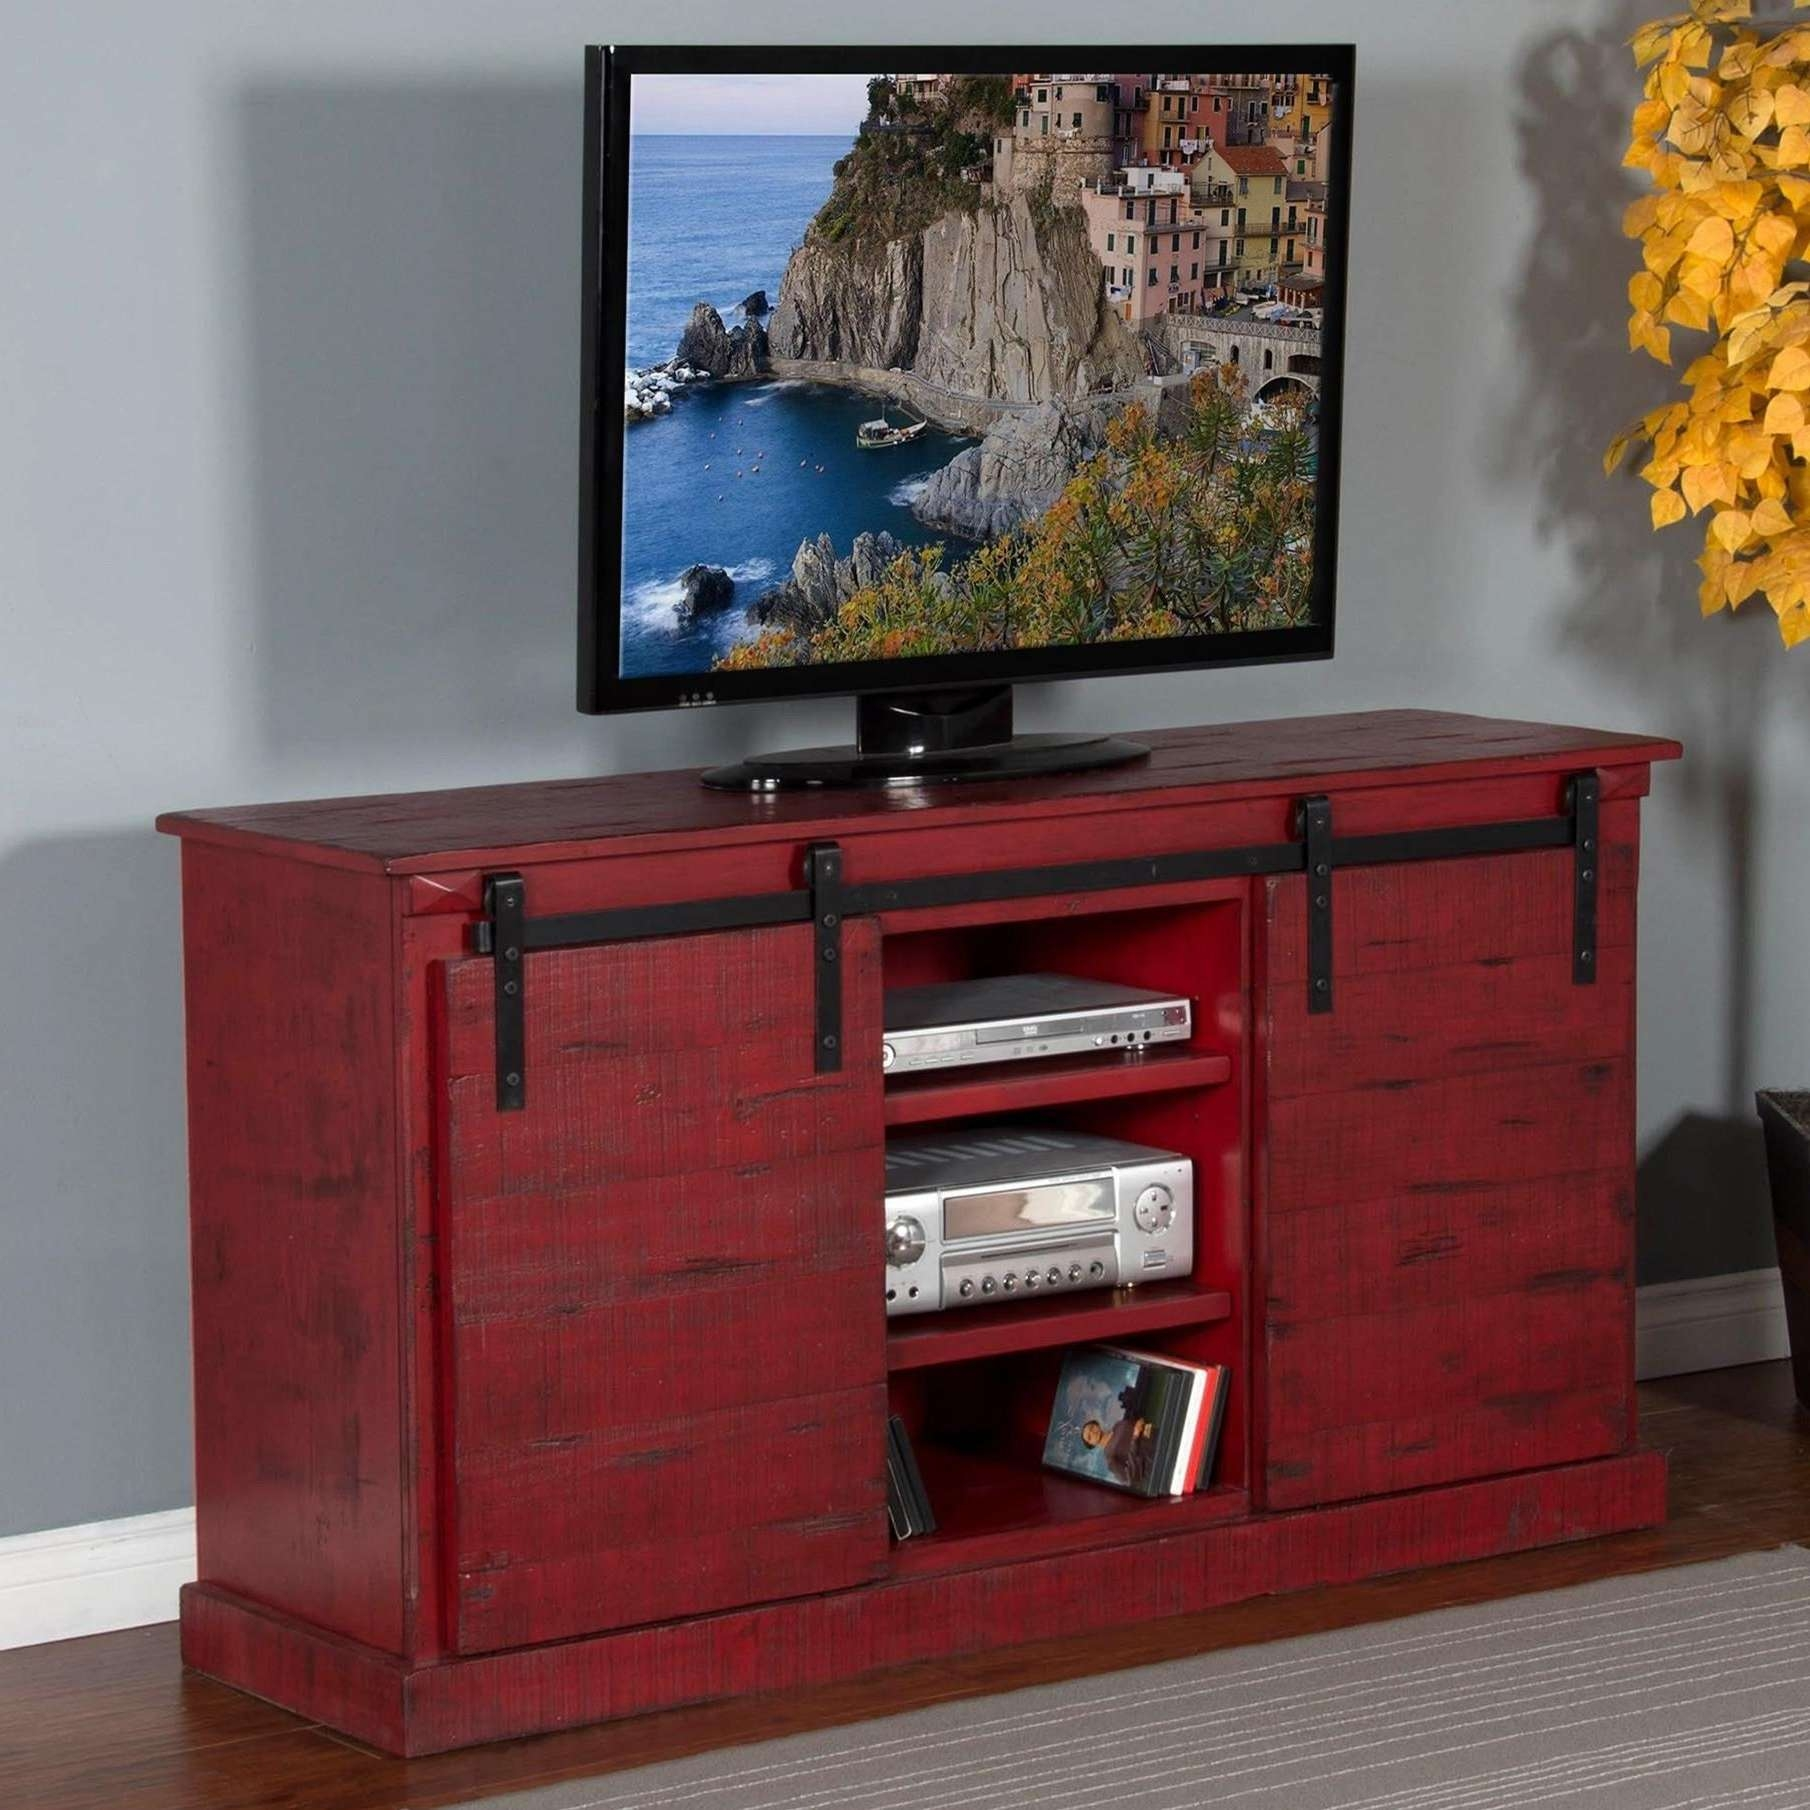 Shop Tv Stands | Wolf And Gardiner Wolf Furniture Intended For Rustic Red Tv Stands (View 9 of 15)